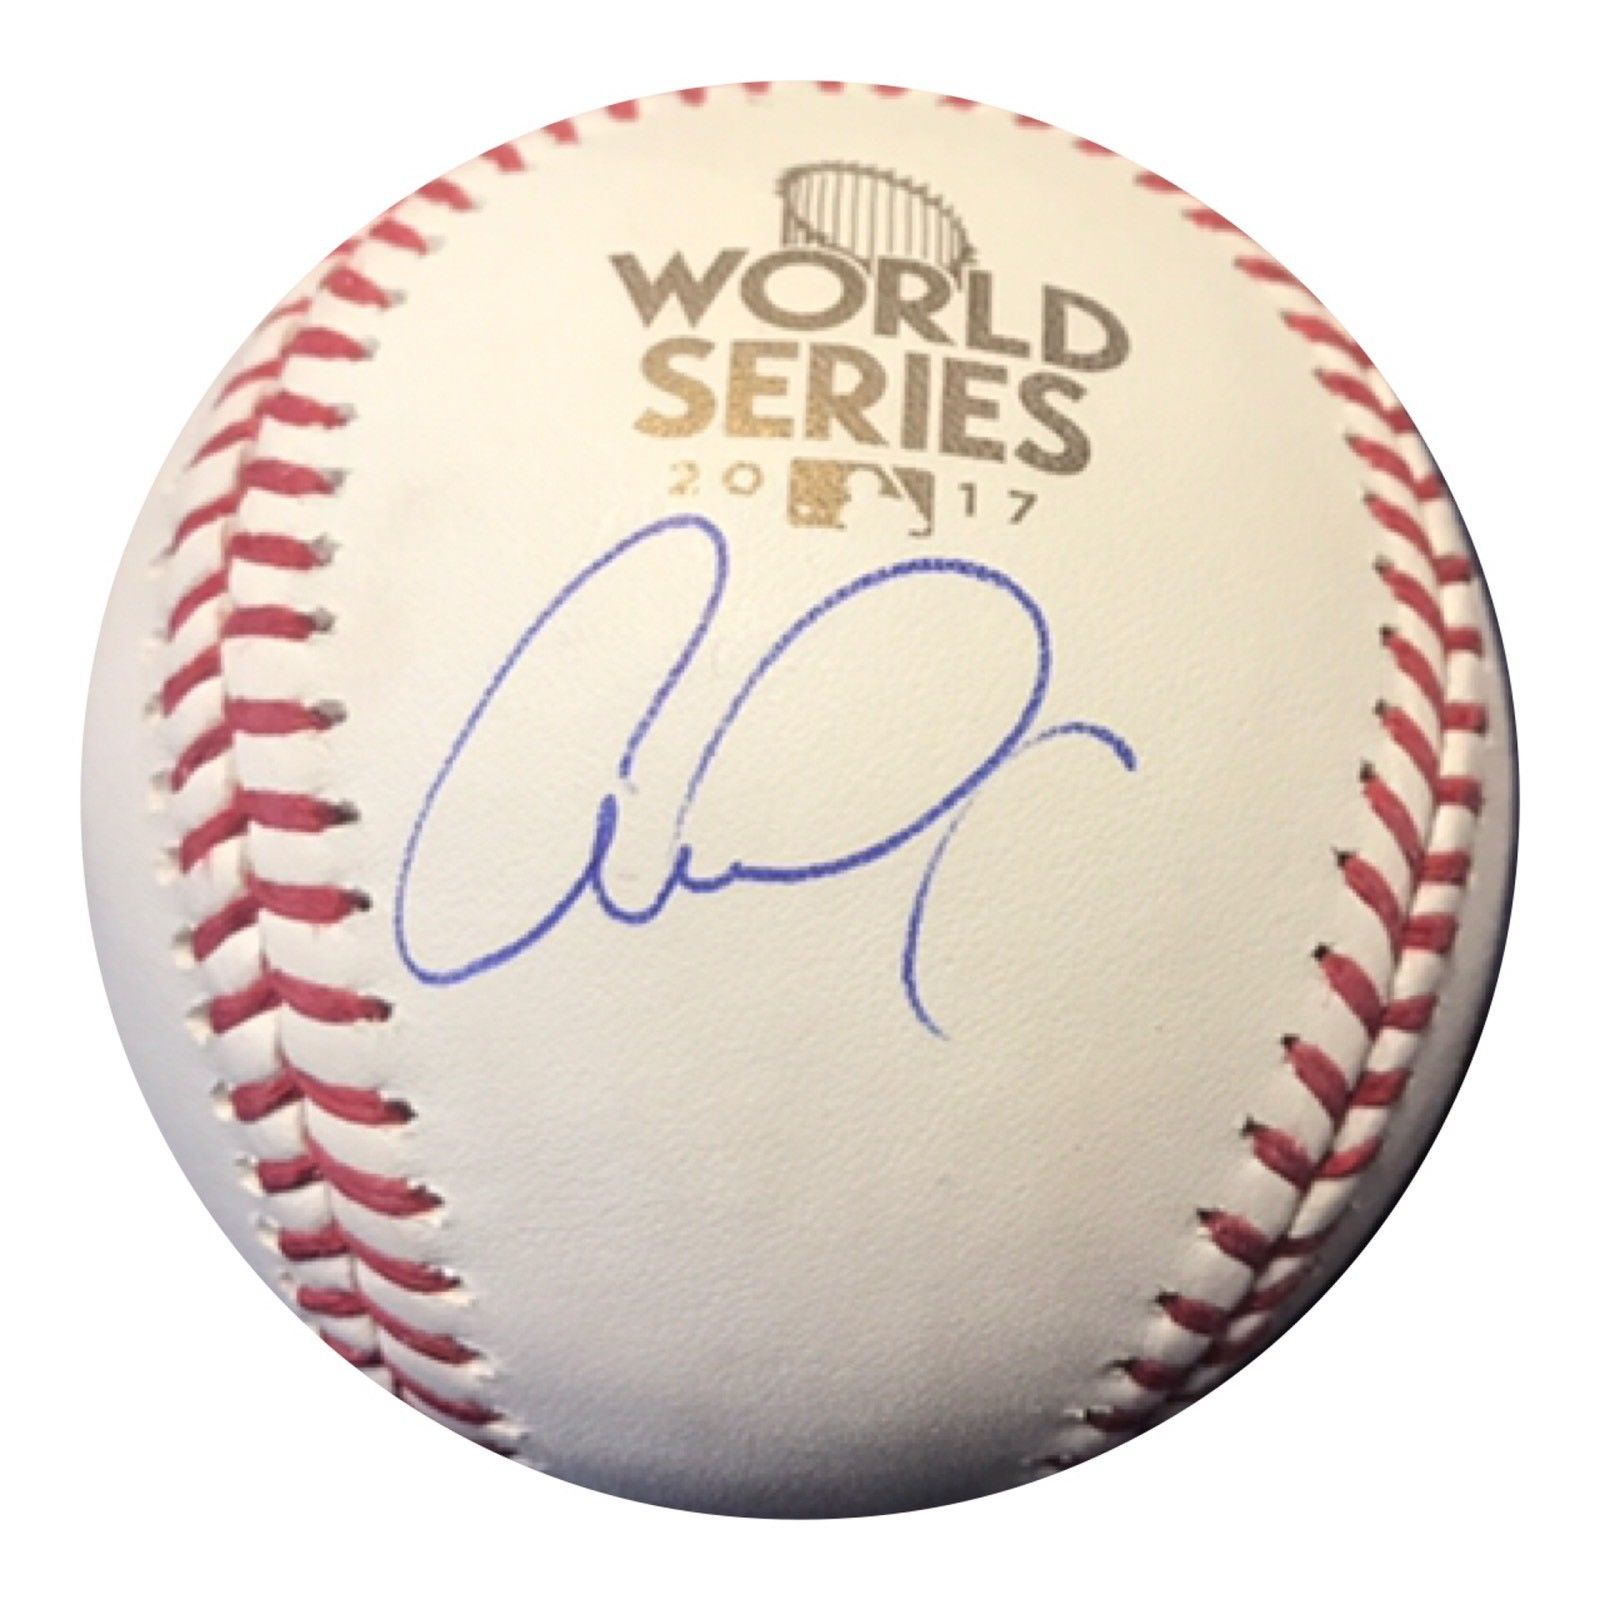 Carlos Correa Authentic Signed 2017 World series Baseball (JSA) HOUSTON ASTROS - Top Notch Signatures LLC